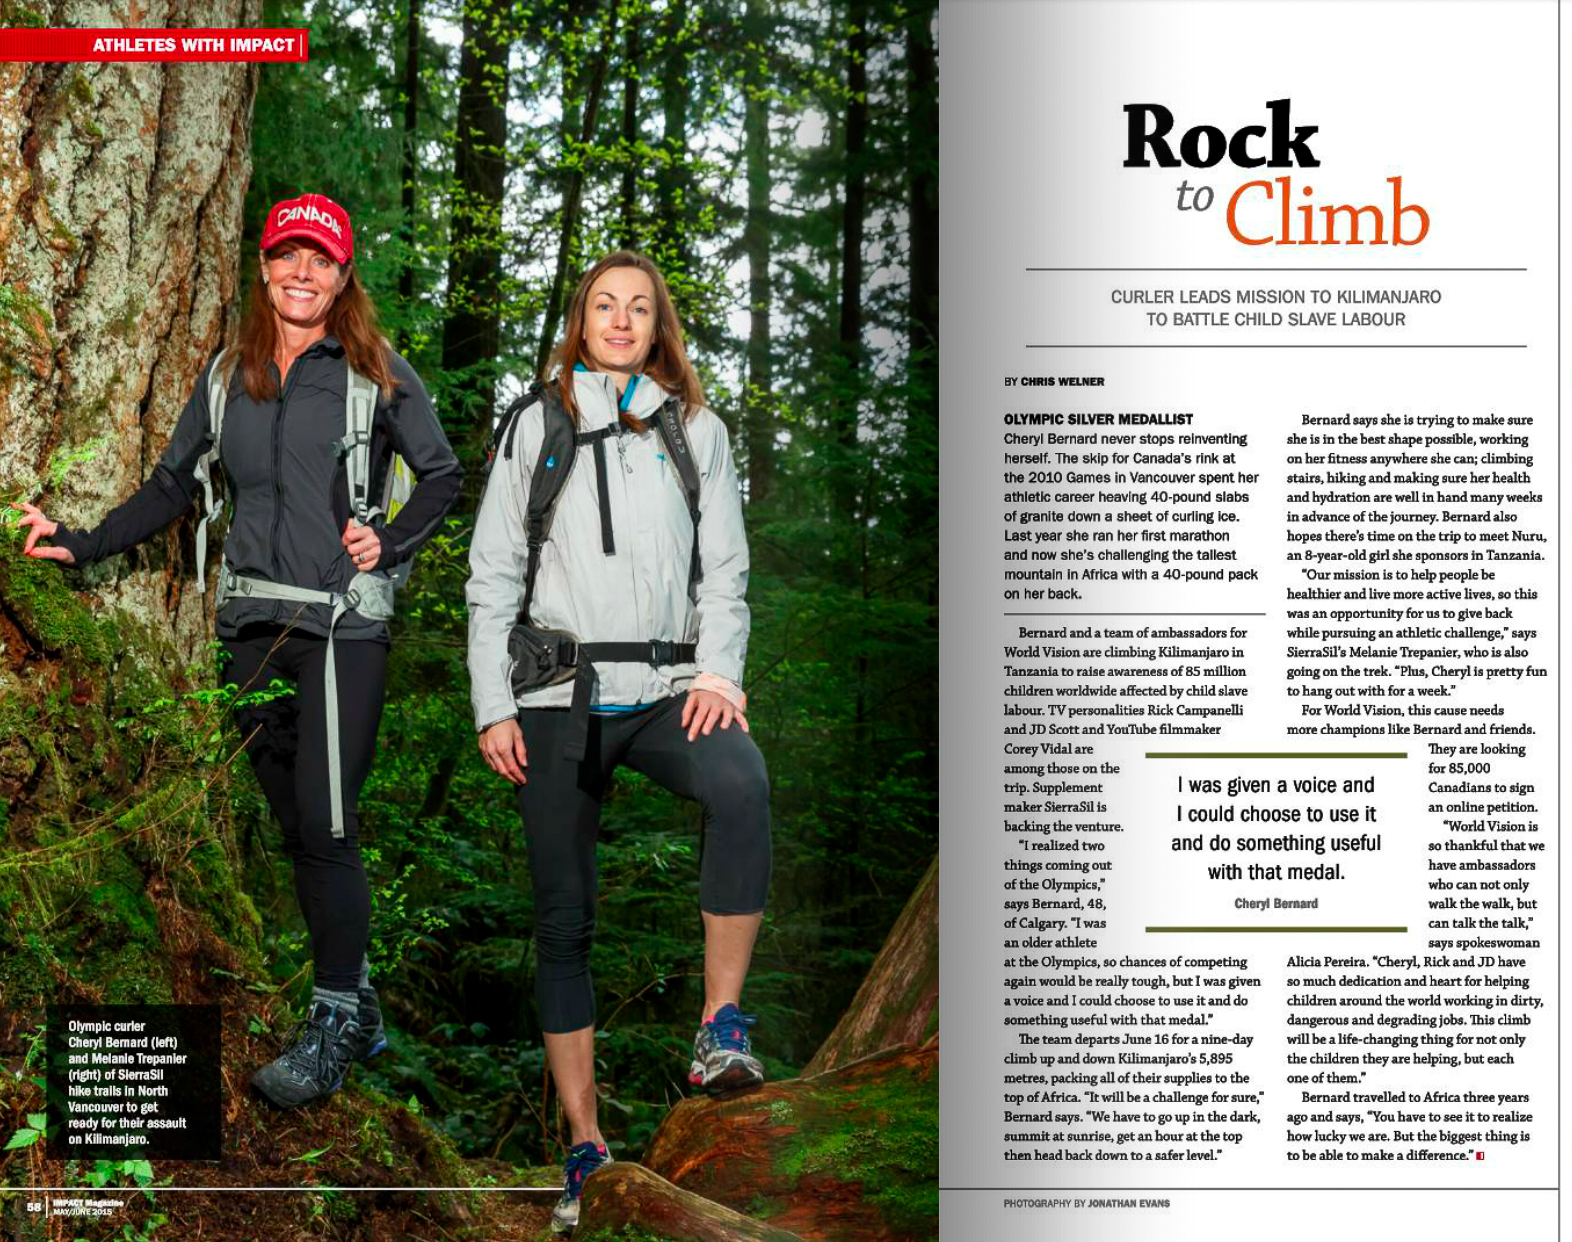 Rock-To-Climb-image1.jpg